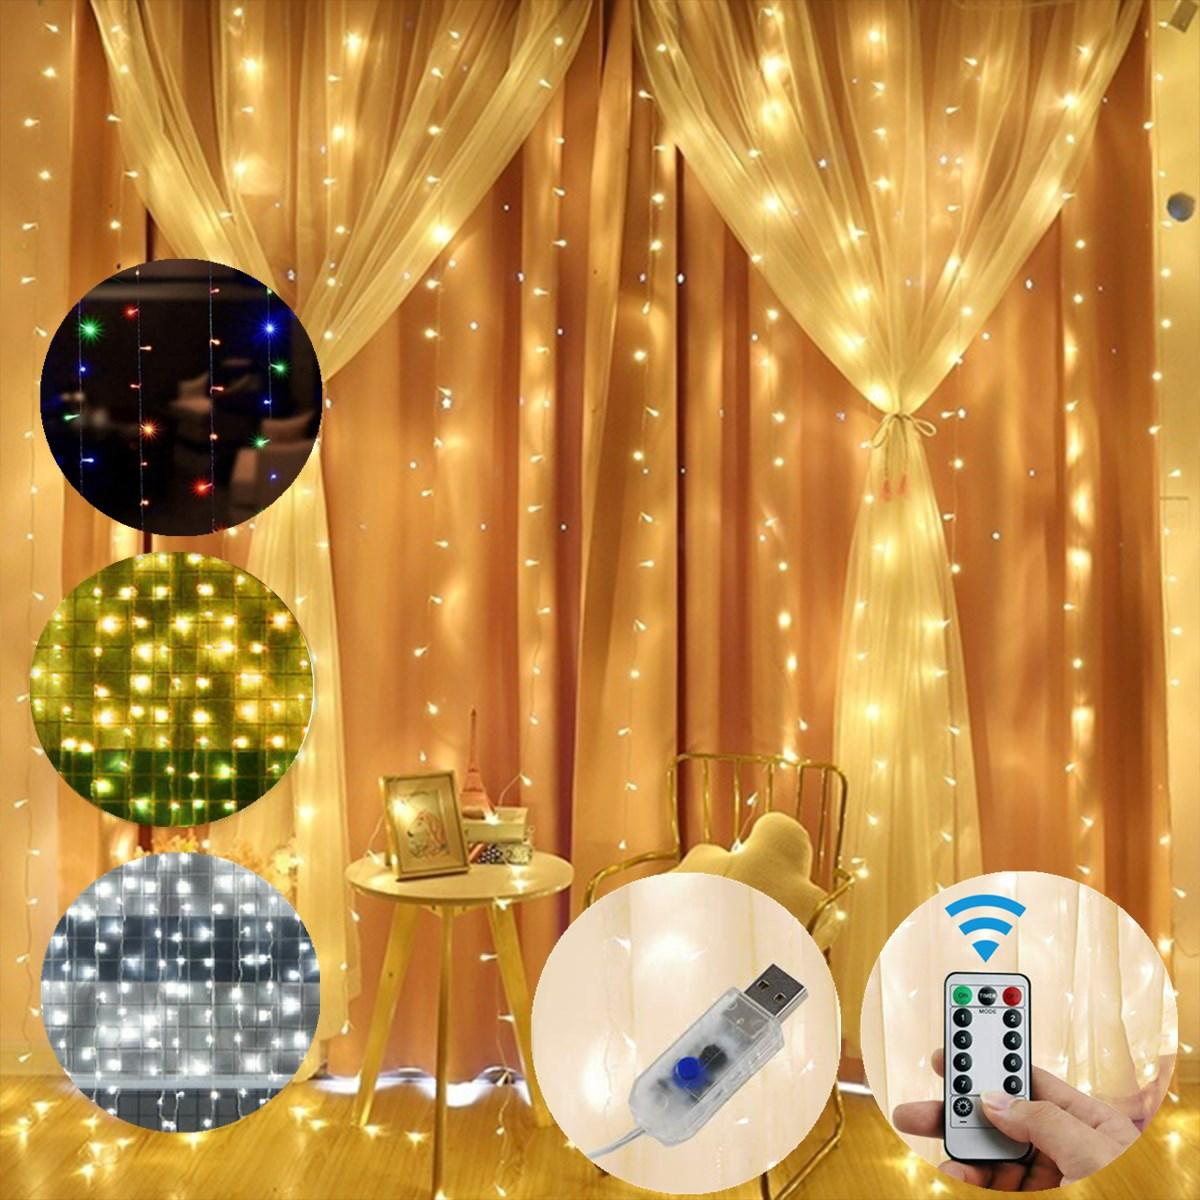 3M*1M/3M*2M USB Waterproof Sliver Wire LED String Light Curtain Tree Strip Fairy Christmas Decorations Clearance Christm, Banggood  - buy with discount